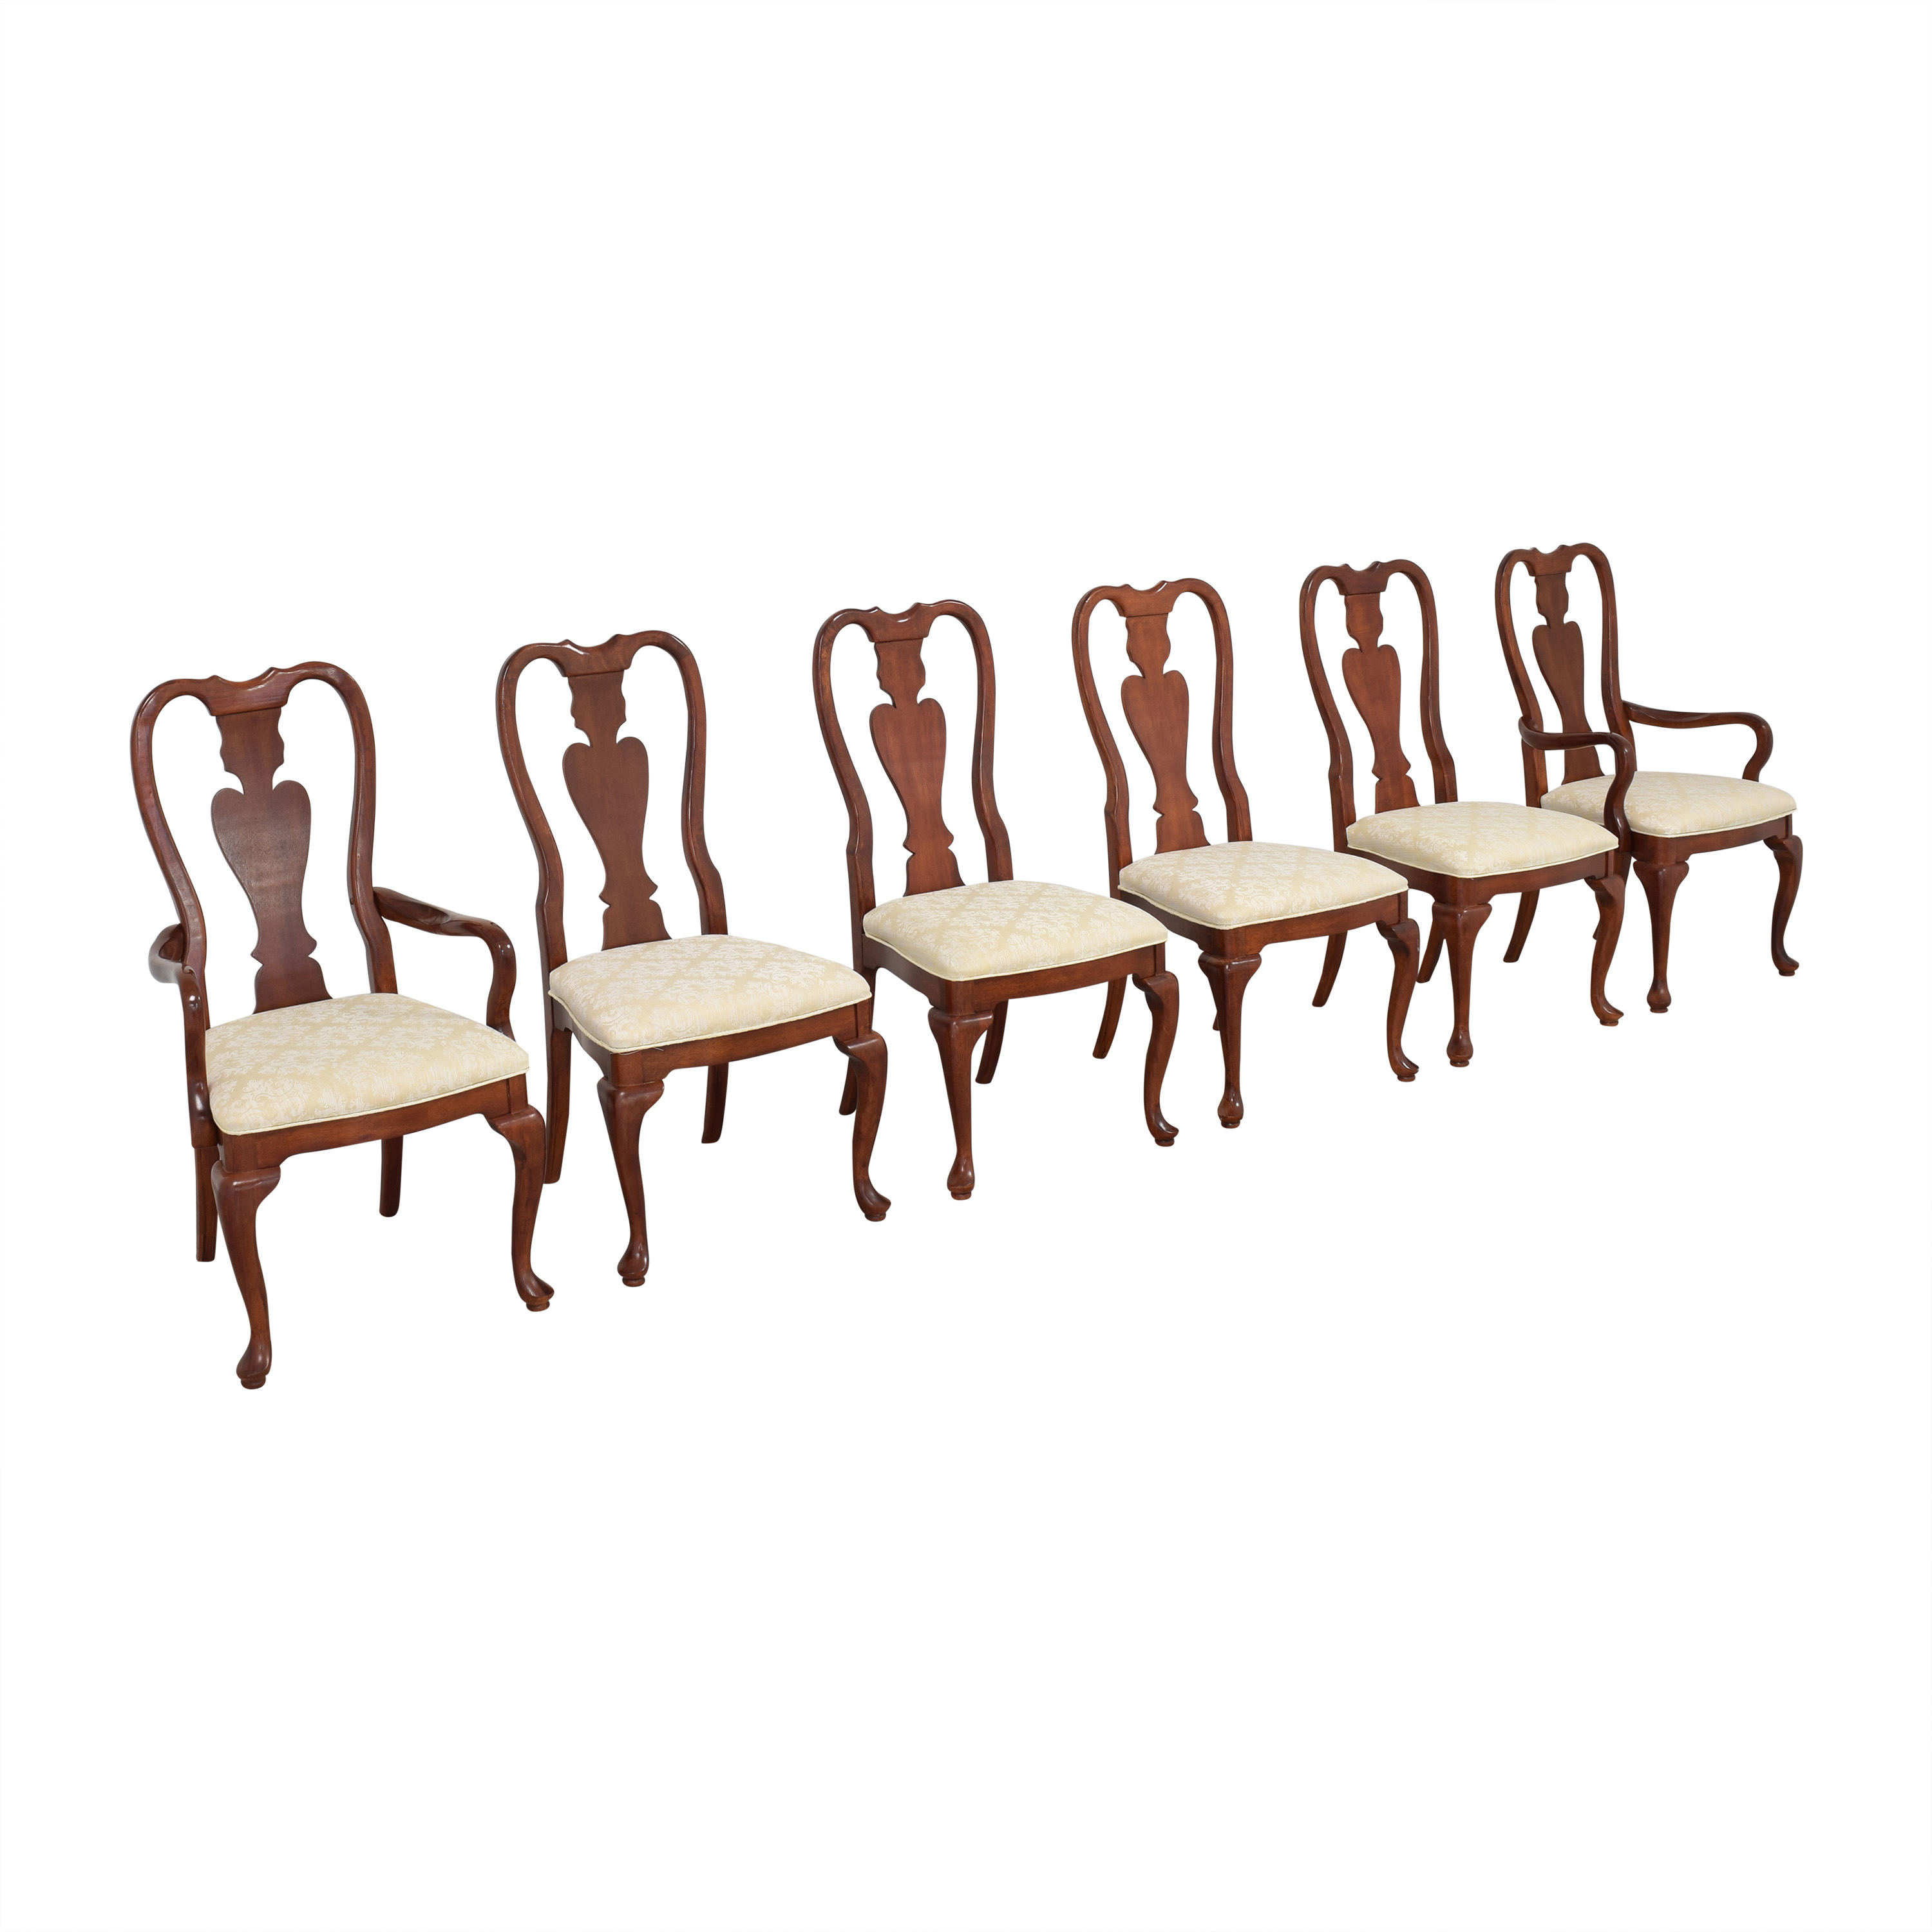 Universal Furniture Universal Furniture Queen Anne Dining Chairs brown & beige